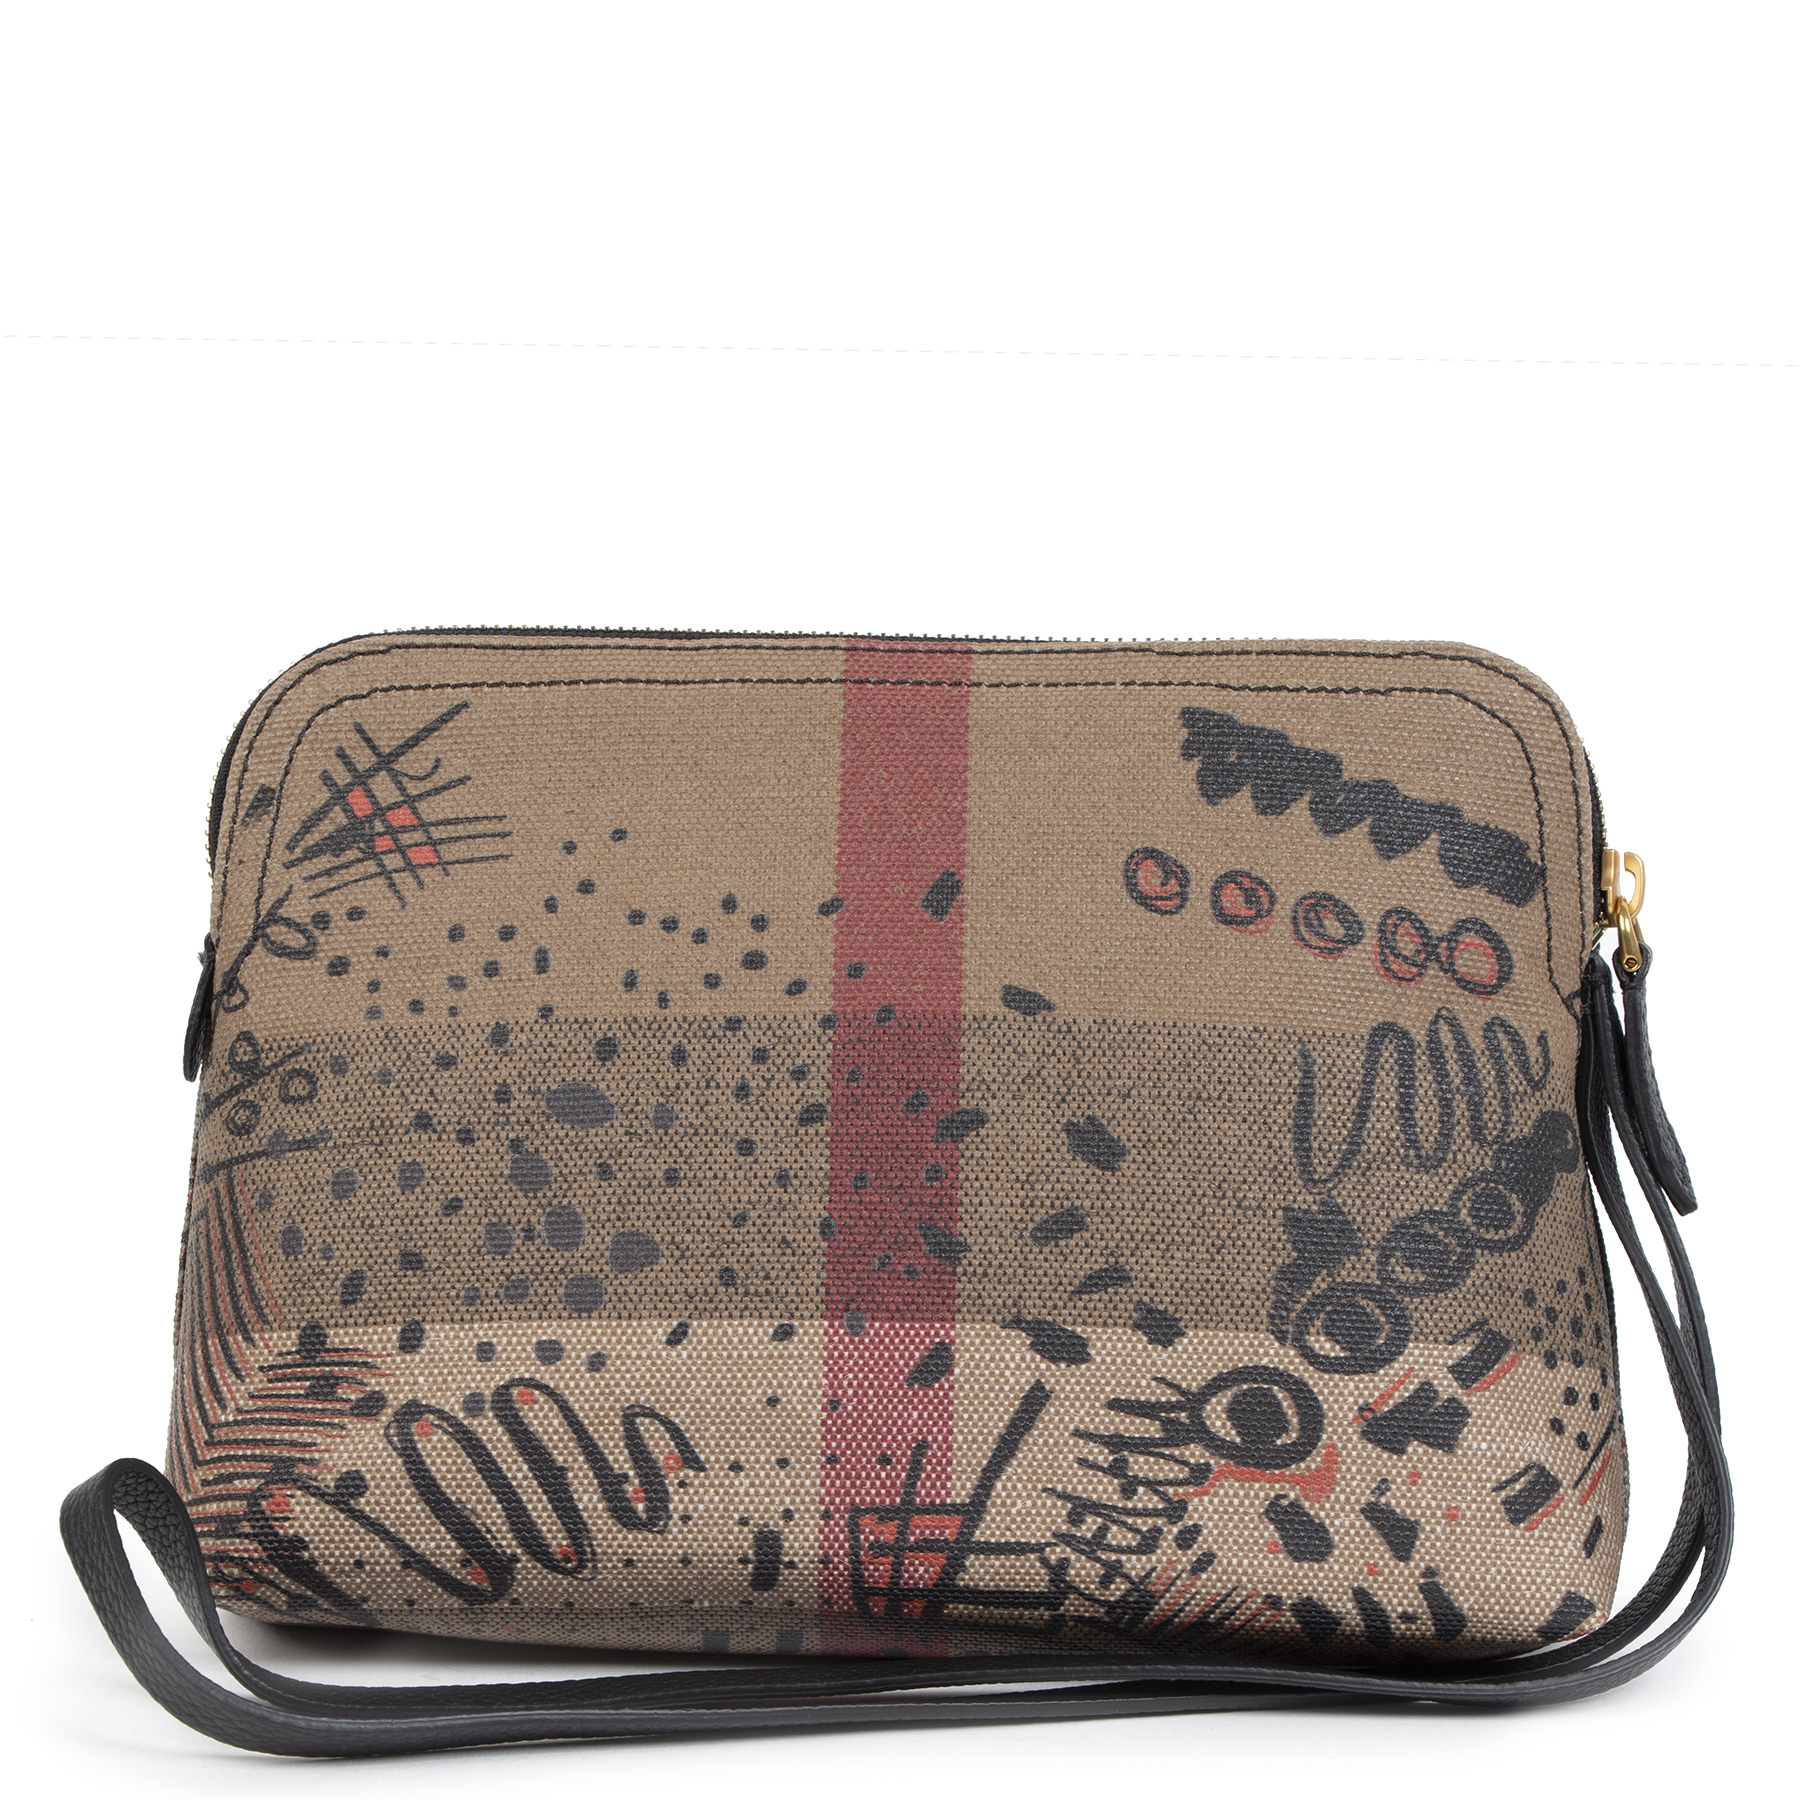 Authentic Burberry Limited Edition Sketch Pouch at the right price online safe and secure online webshop LabelLOV luxury brand LabelLOV Antwerp Belgium